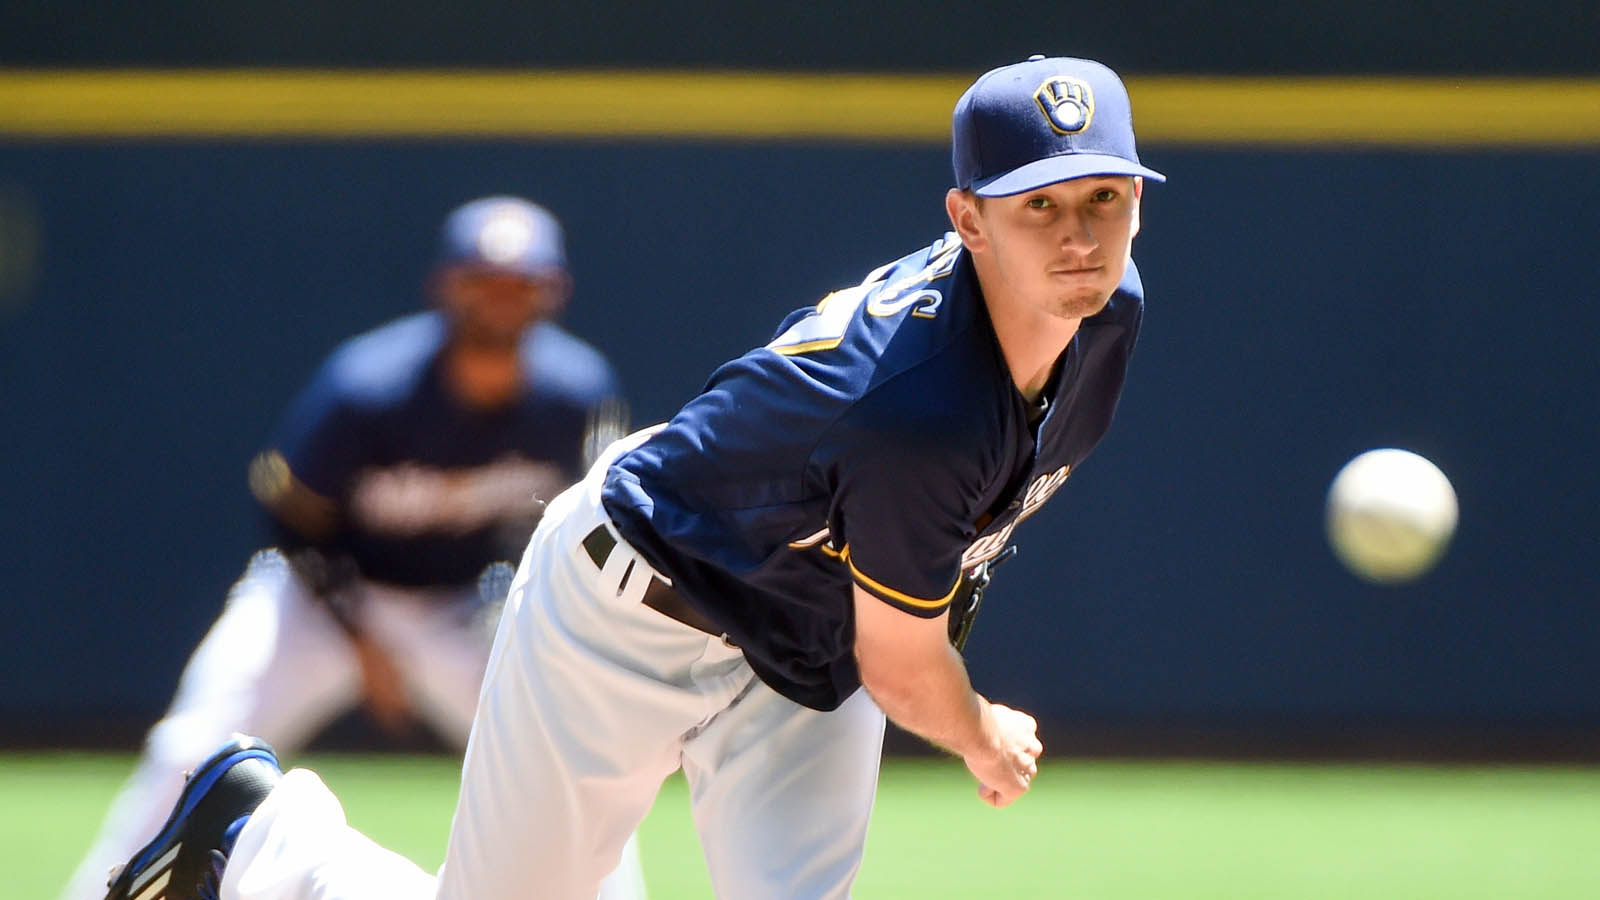 Midweek Stock Report: Welcome back, Davies and Knebel